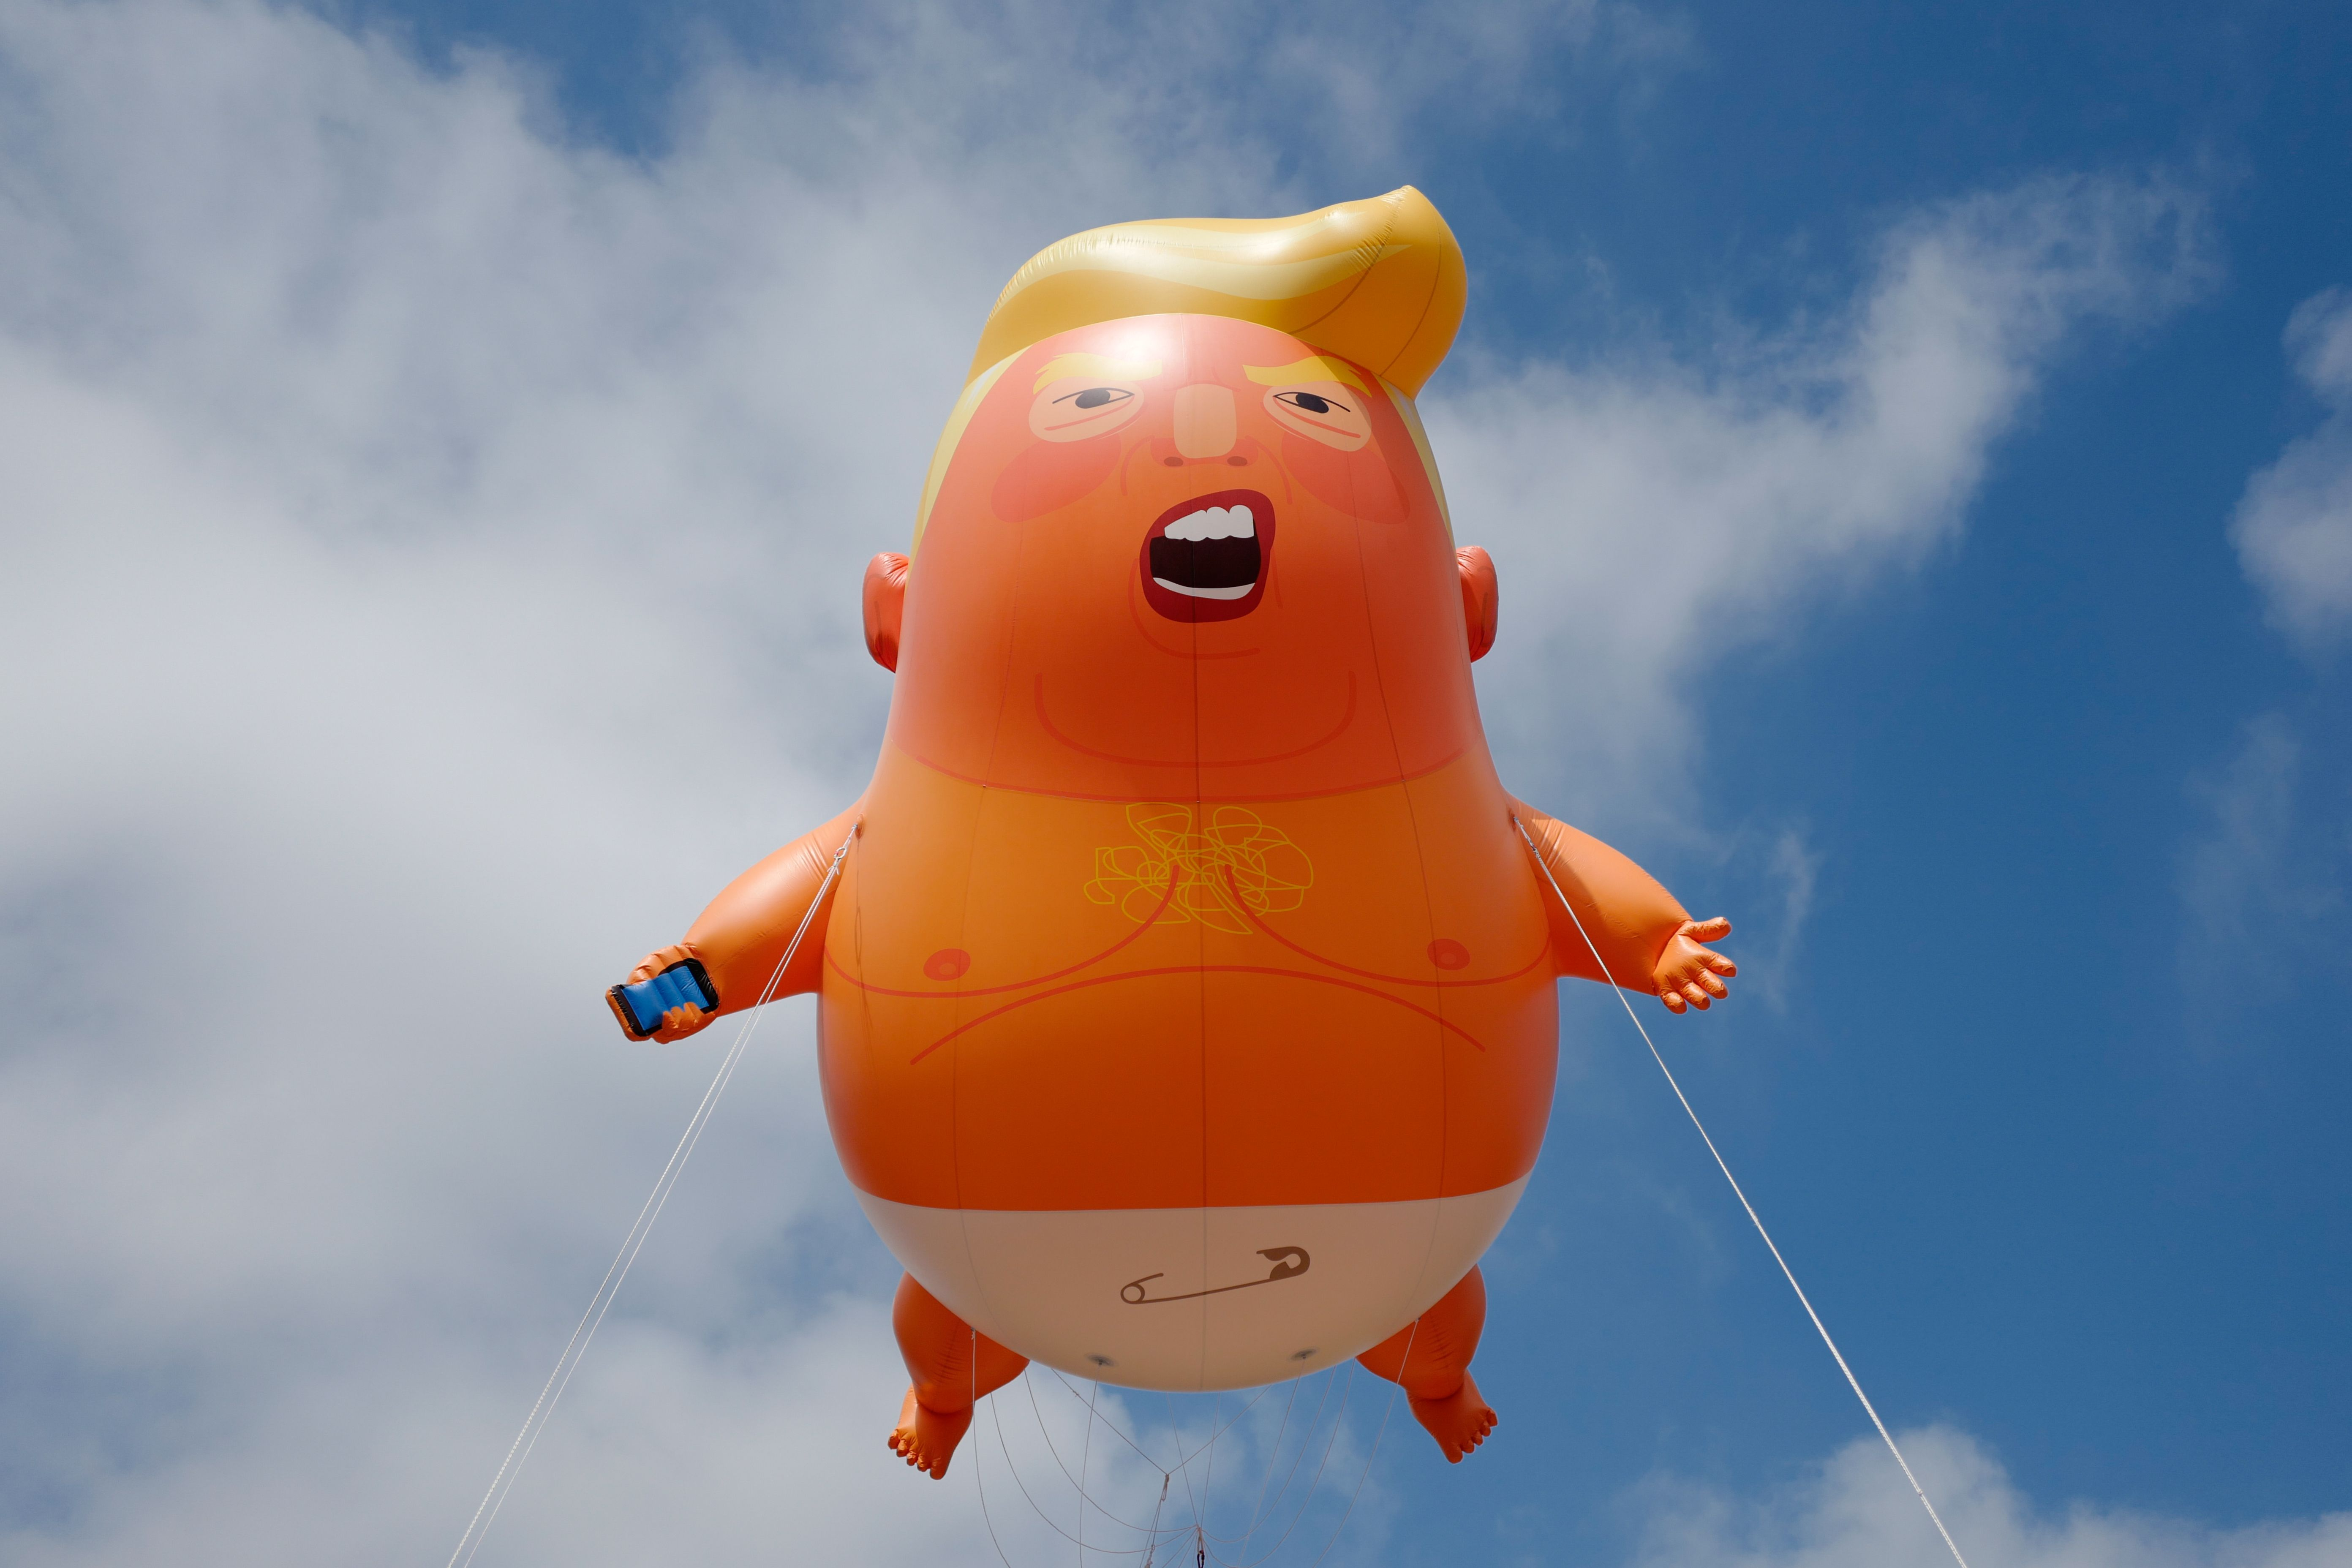 "A giant balloon inflated by activists depicting US President Donald Trump as an orange baby is seen during a demonstration against Trump's visit to the UK in Parliament Square in London on July 13, 2018. - US President Donald Trump launched an extraordinary attack on Prime Minister Theresa May's Brexit strategy, plunging the transatlantic ""special relationship"" to a new low as they prepared to meet Friday on the second day of his tumultuous trip to Britain."